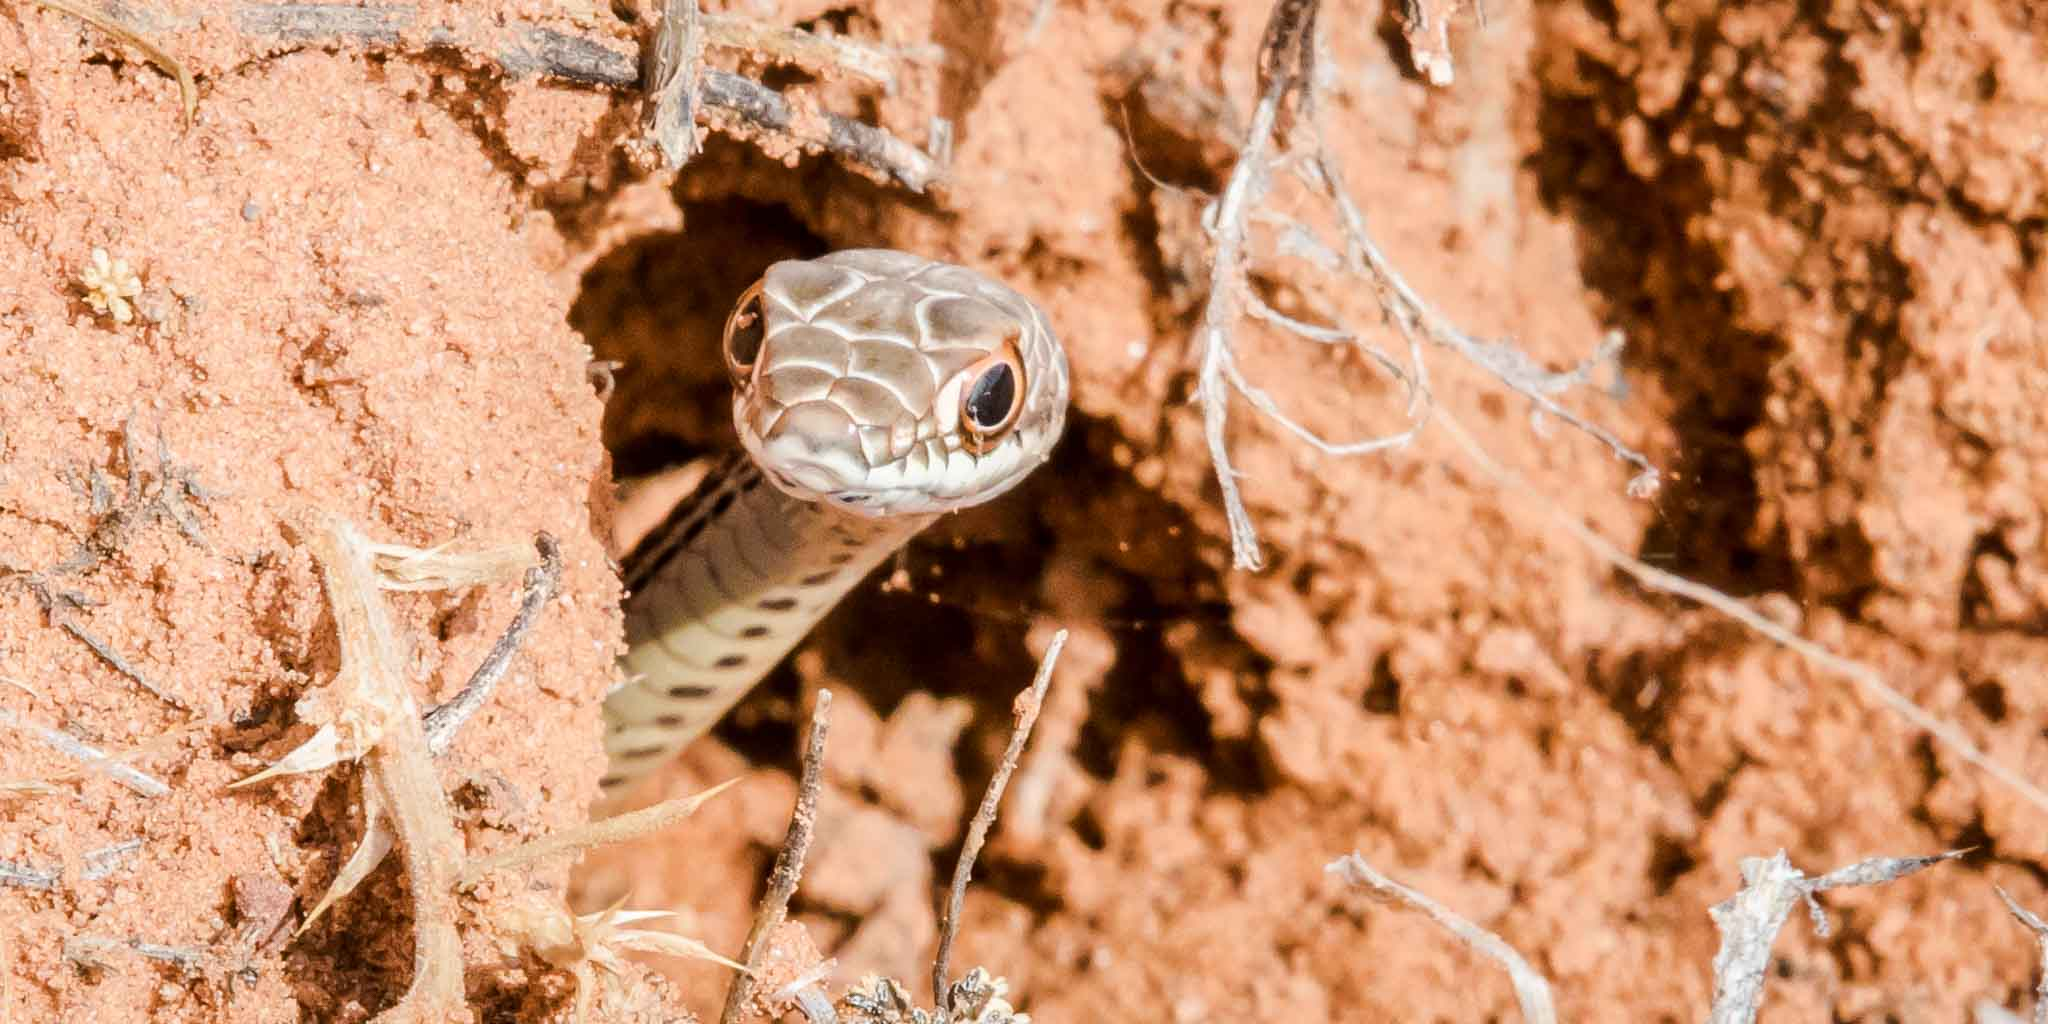 Western Patch-nosed Snake peering from burrow, Lockhart Road, Monticello UT